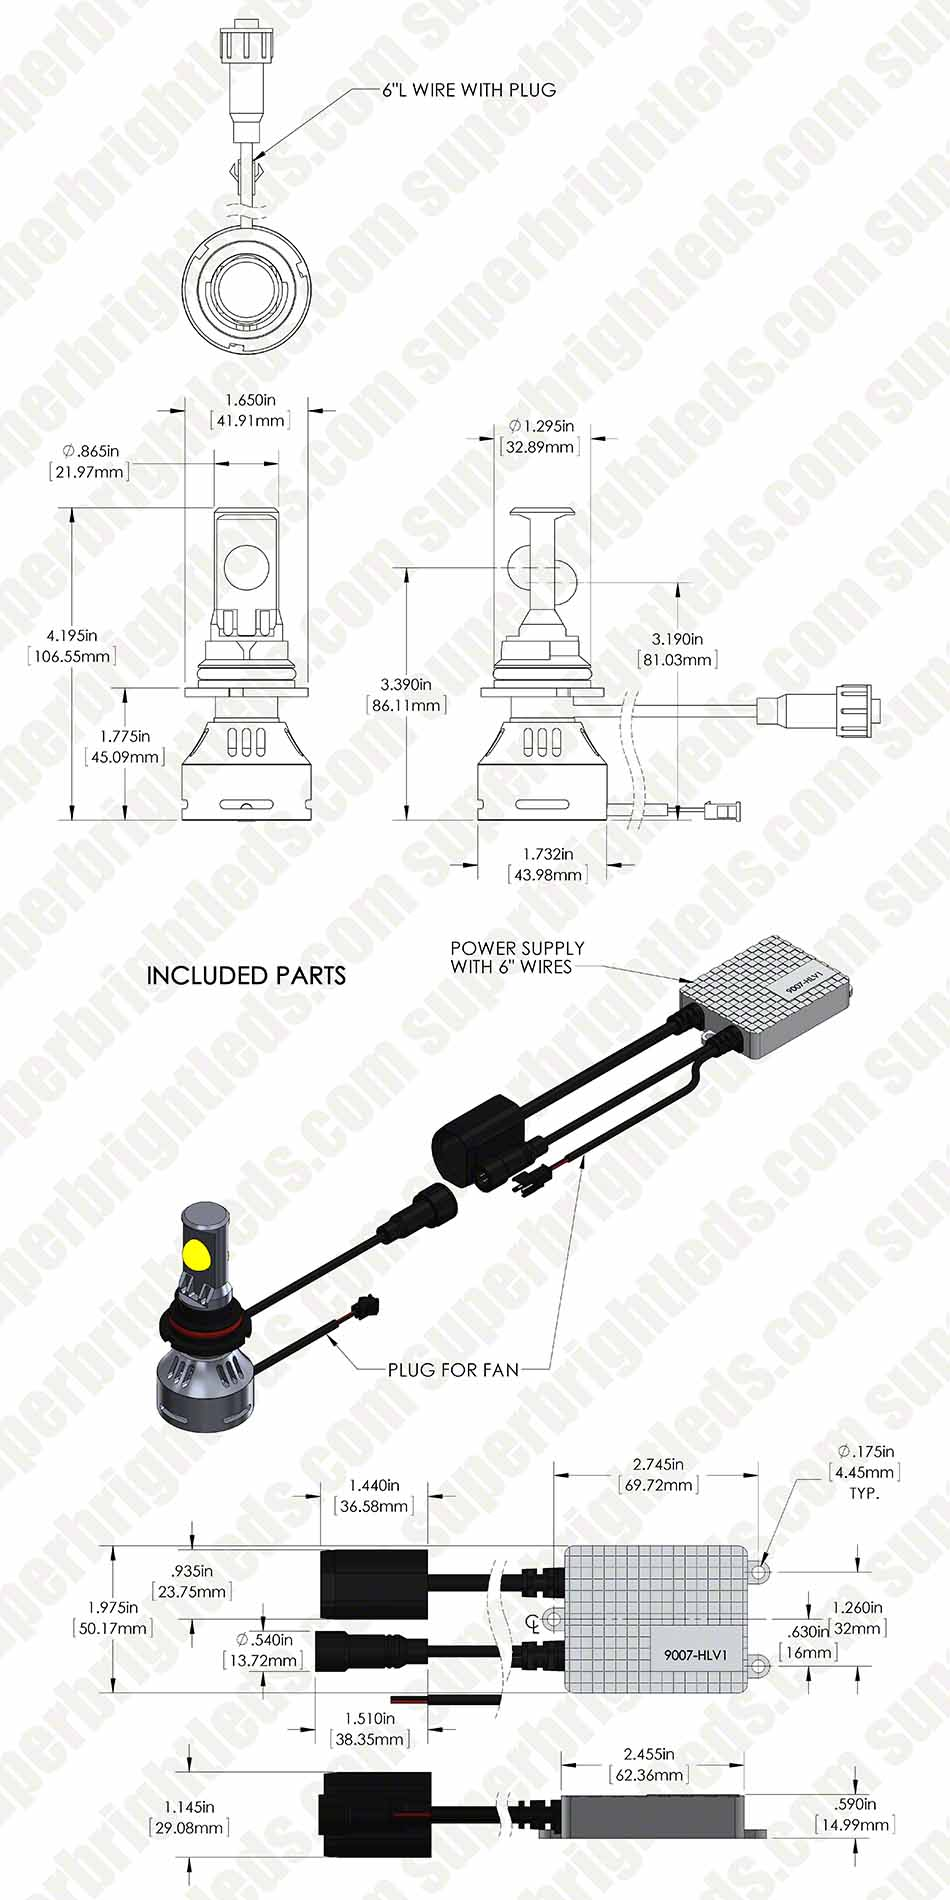 9007 hlv1 assembly digimark0 motorcycle led headlight conversion kit 9007 led headlight bulb 9007 headlight wiring diagram at bayanpartner.co